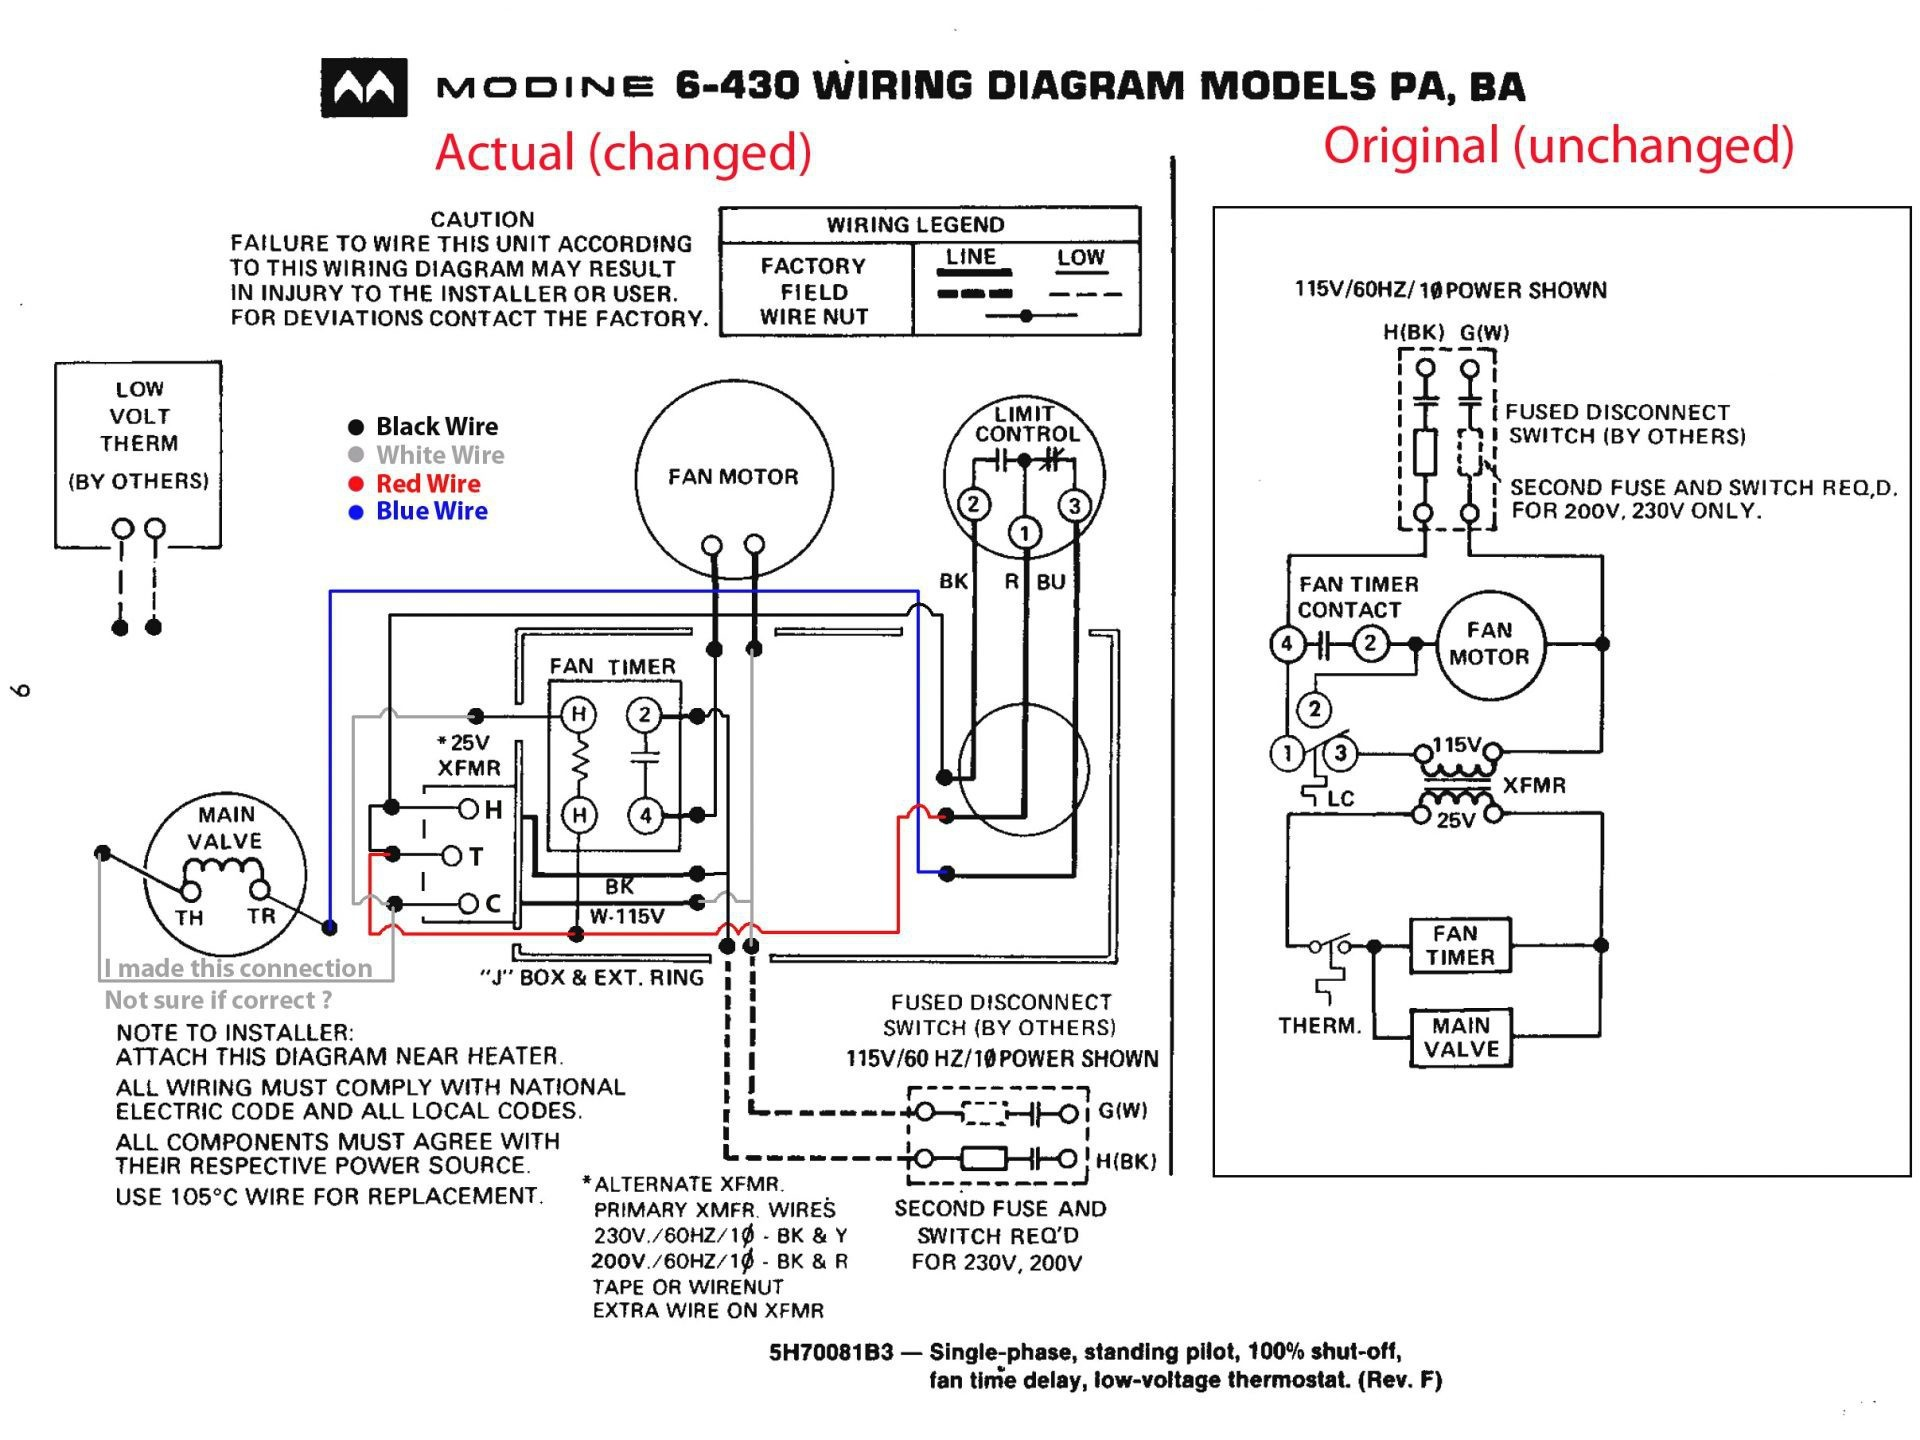 dual element immersion heater wiring diagram 98 mustang alternator water inspirational